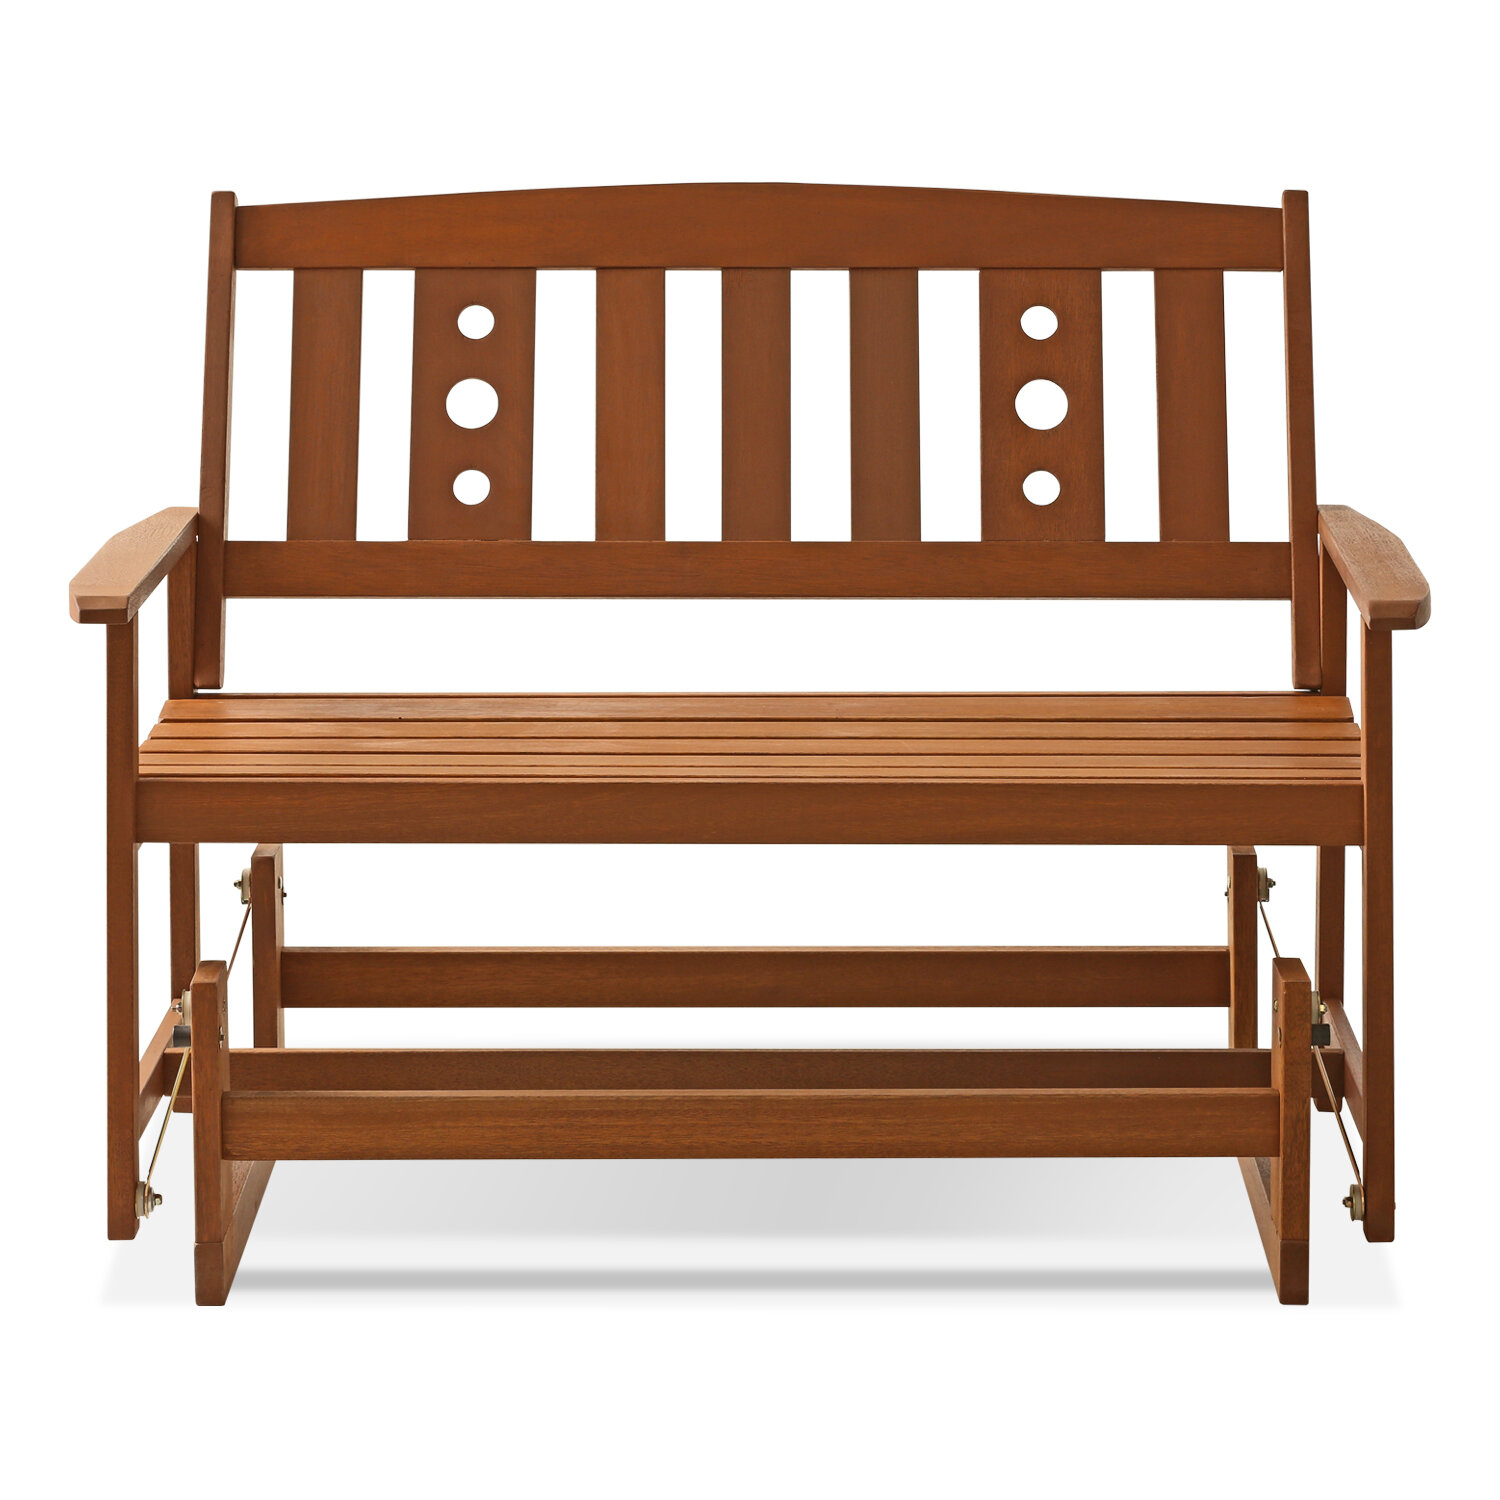 Langley Street Arianna Glider Bench & Reviews | Wayfair Inside Outdoor Patio Swing Glider Benches (View 24 of 25)